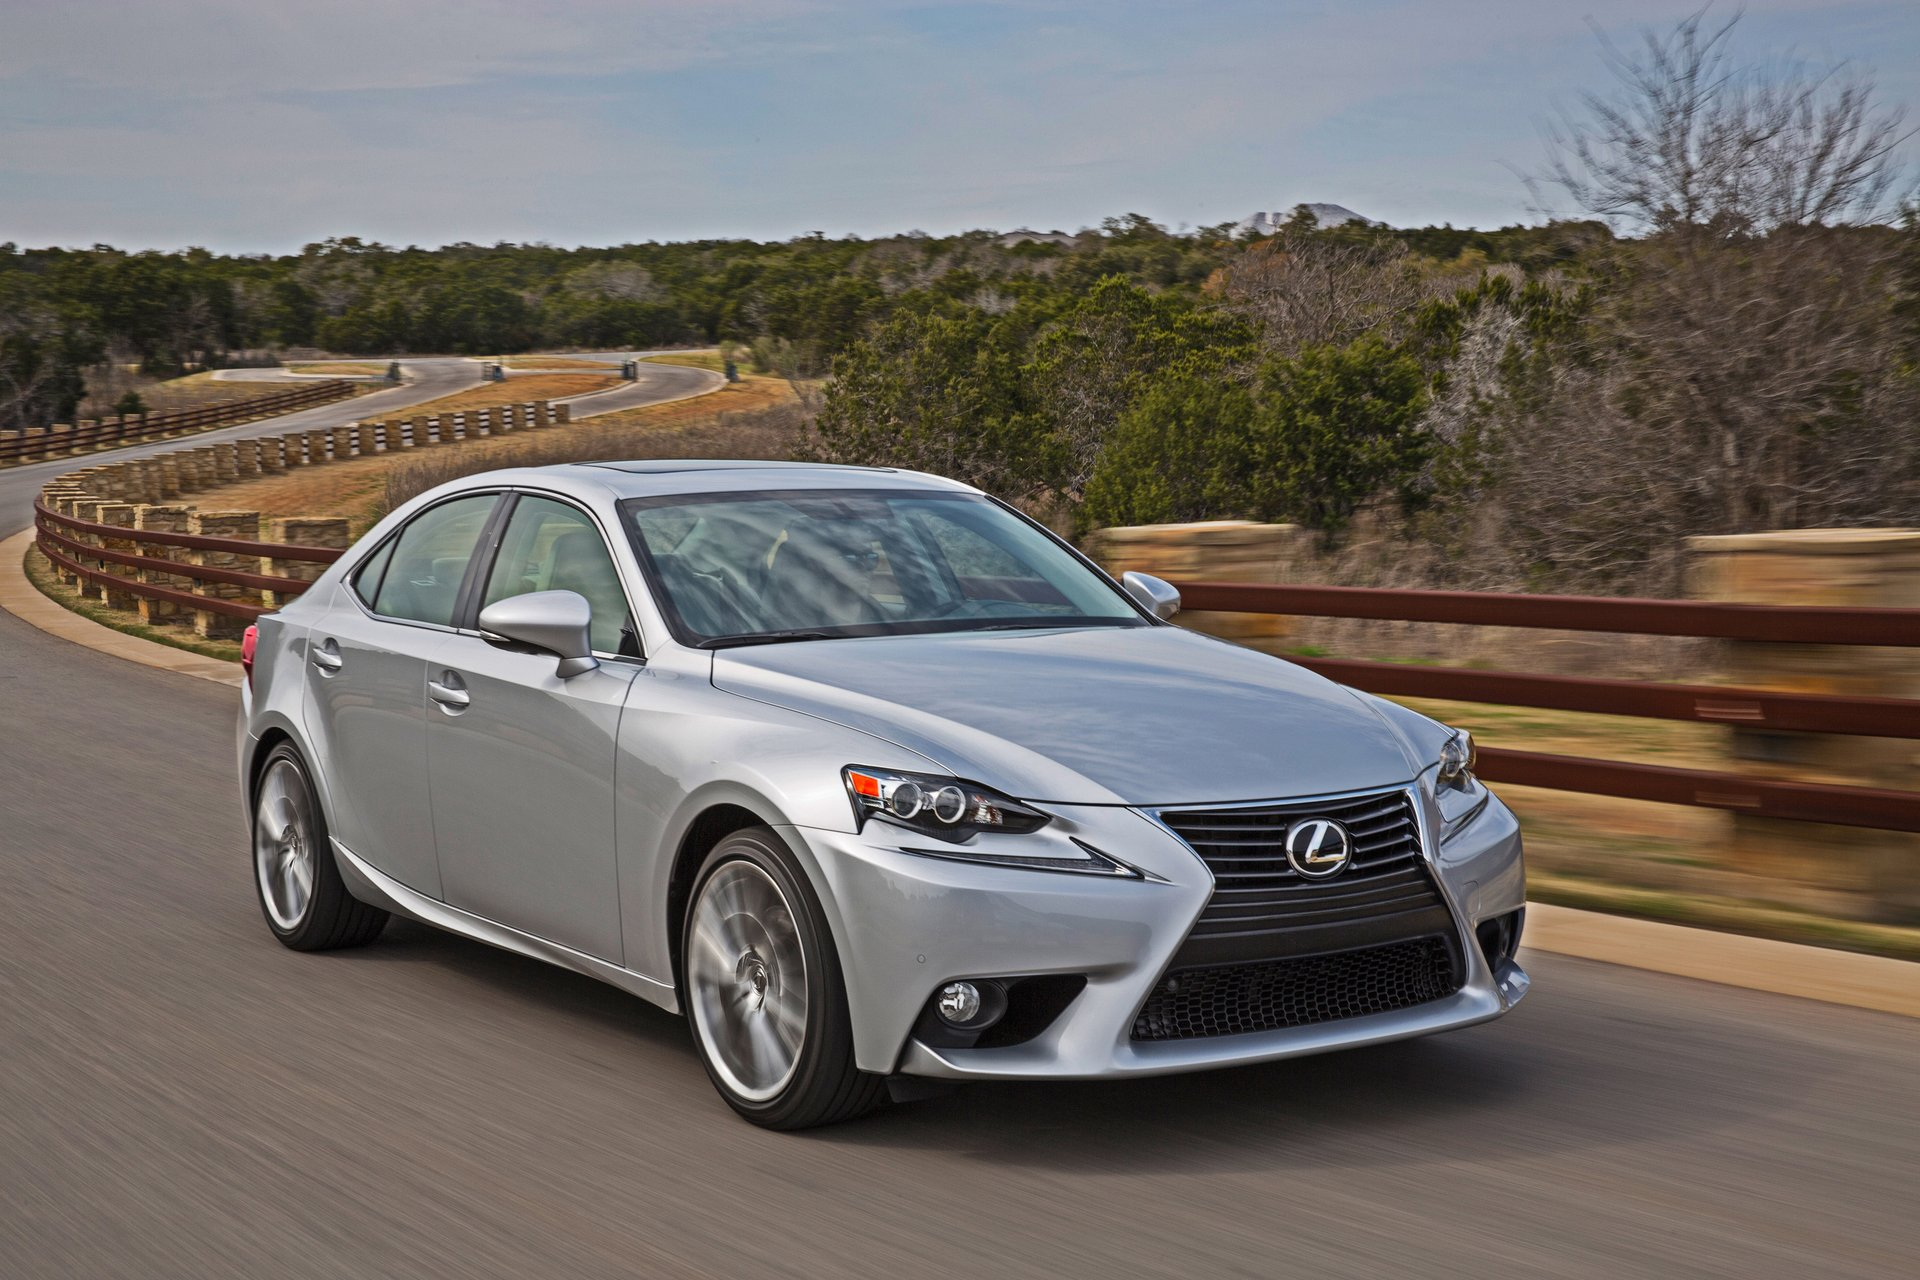 2015 Lexus IS Review Ratings Specs Prices and s The Car